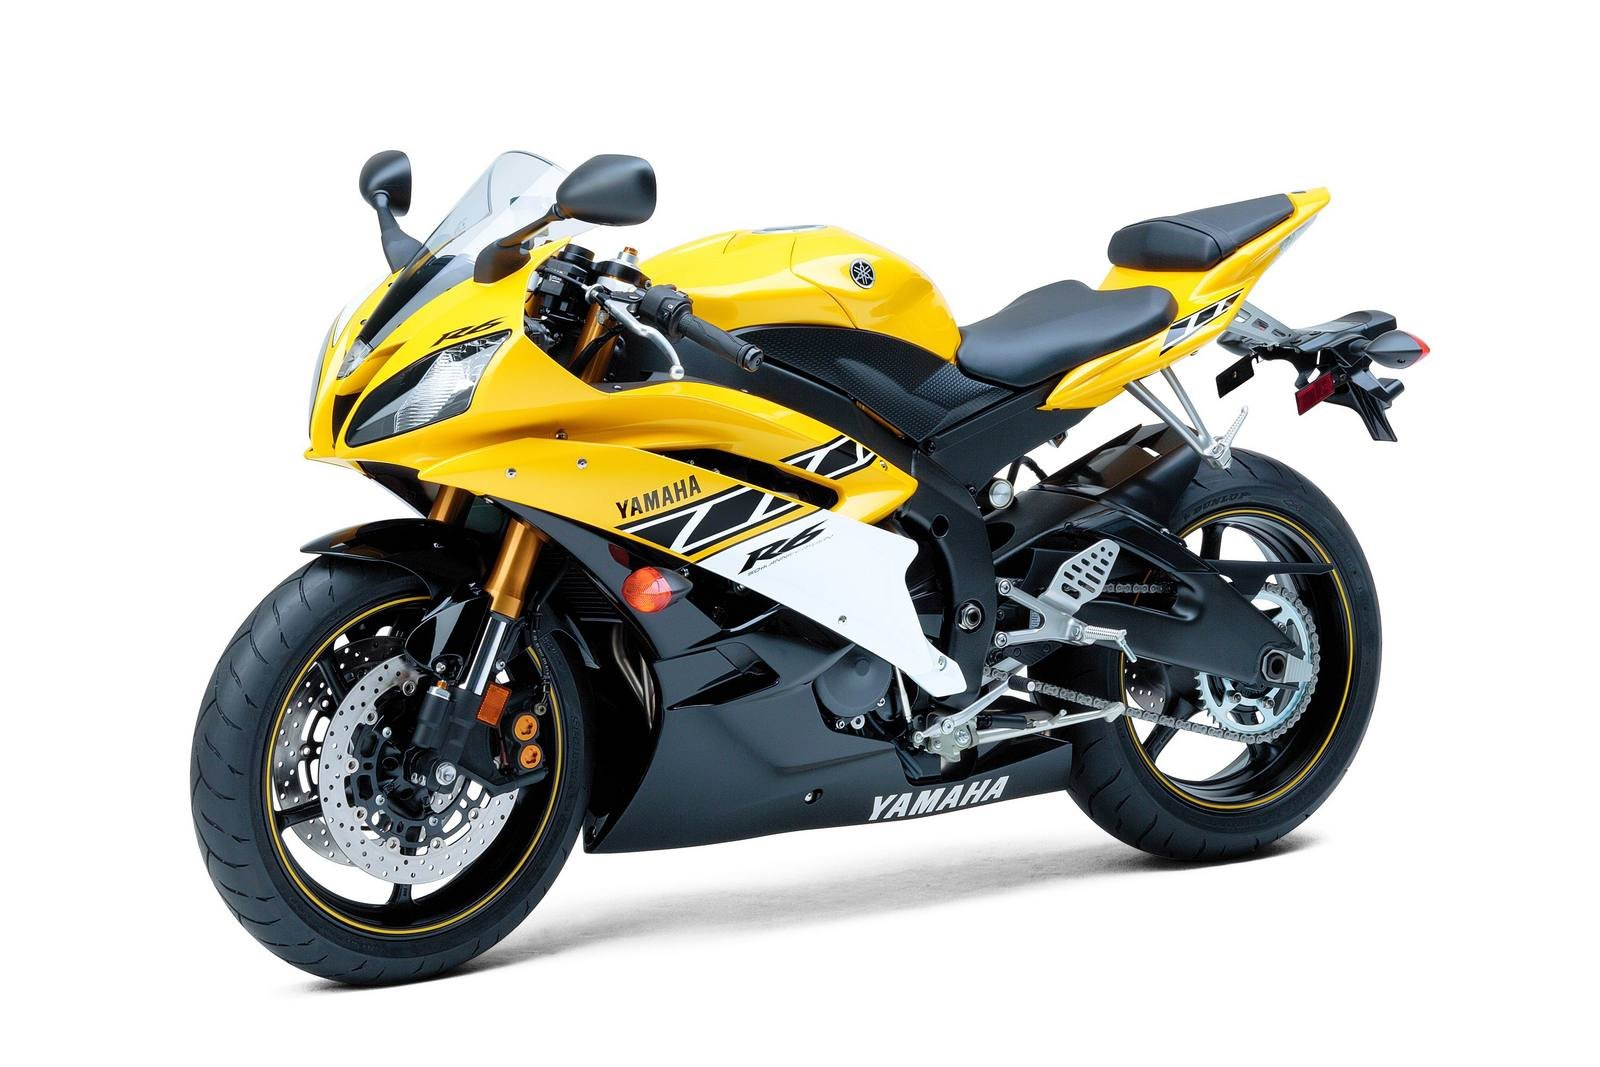 2006 yamaha yzf r6 picture 45407 motorcycle review for 2006 yamaha yzf r6